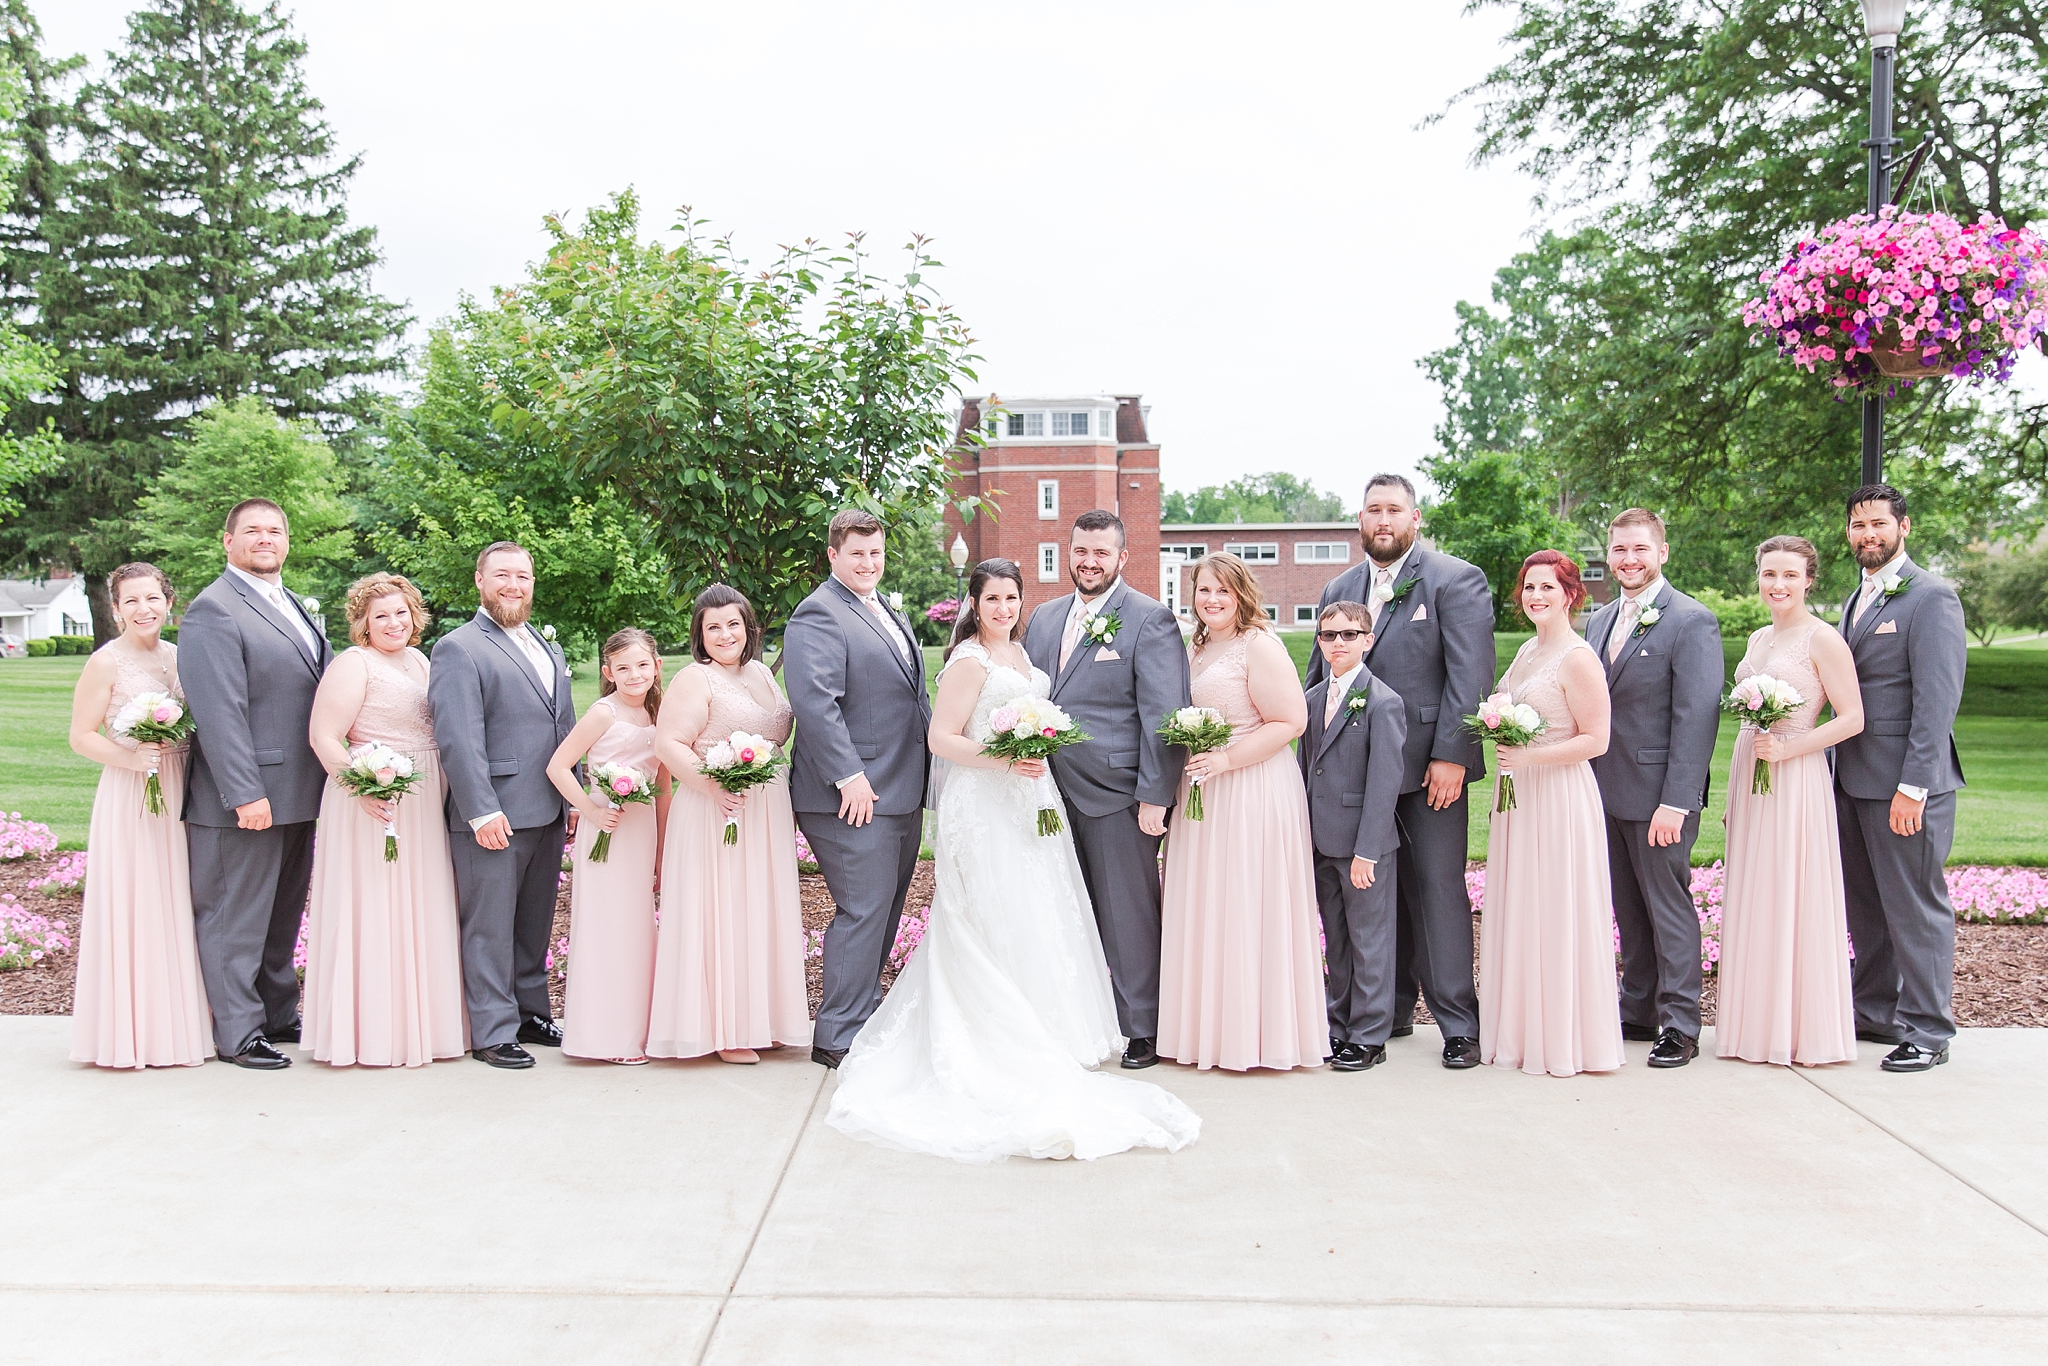 emotional-laid-back-romantic-wedding-photos-at-adrian-college-herrick-chapel-in-adrian-michigan-by-courtney-carolyn-photography_0039.jpg